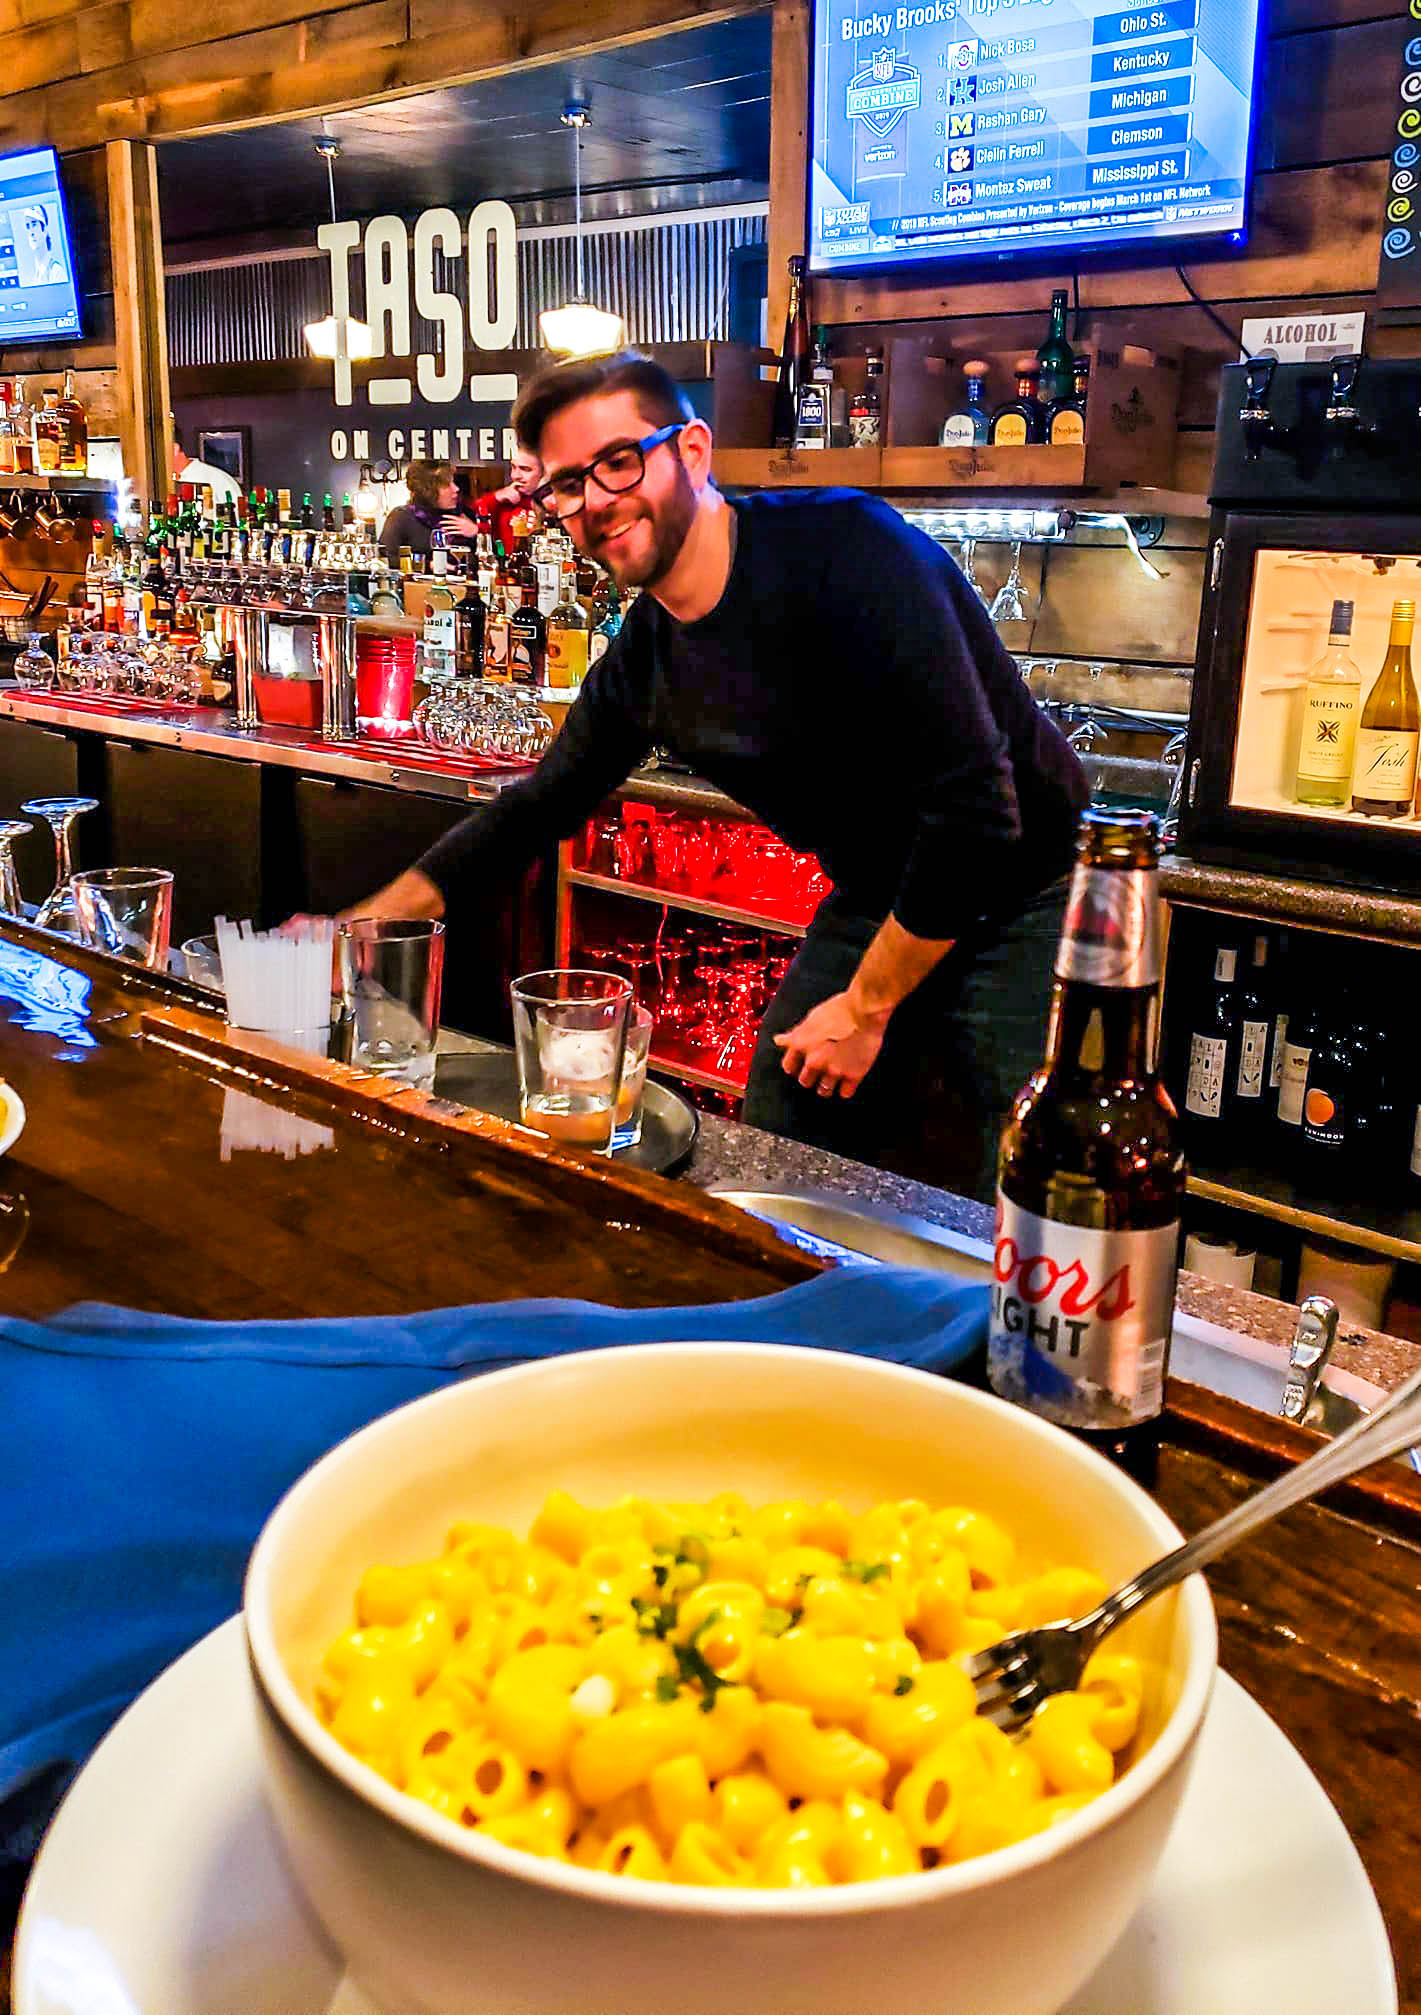 Jim Sabataso bartends at Taso on Center in Downtown Rutland, VT. Photo credit:  William Jalbert